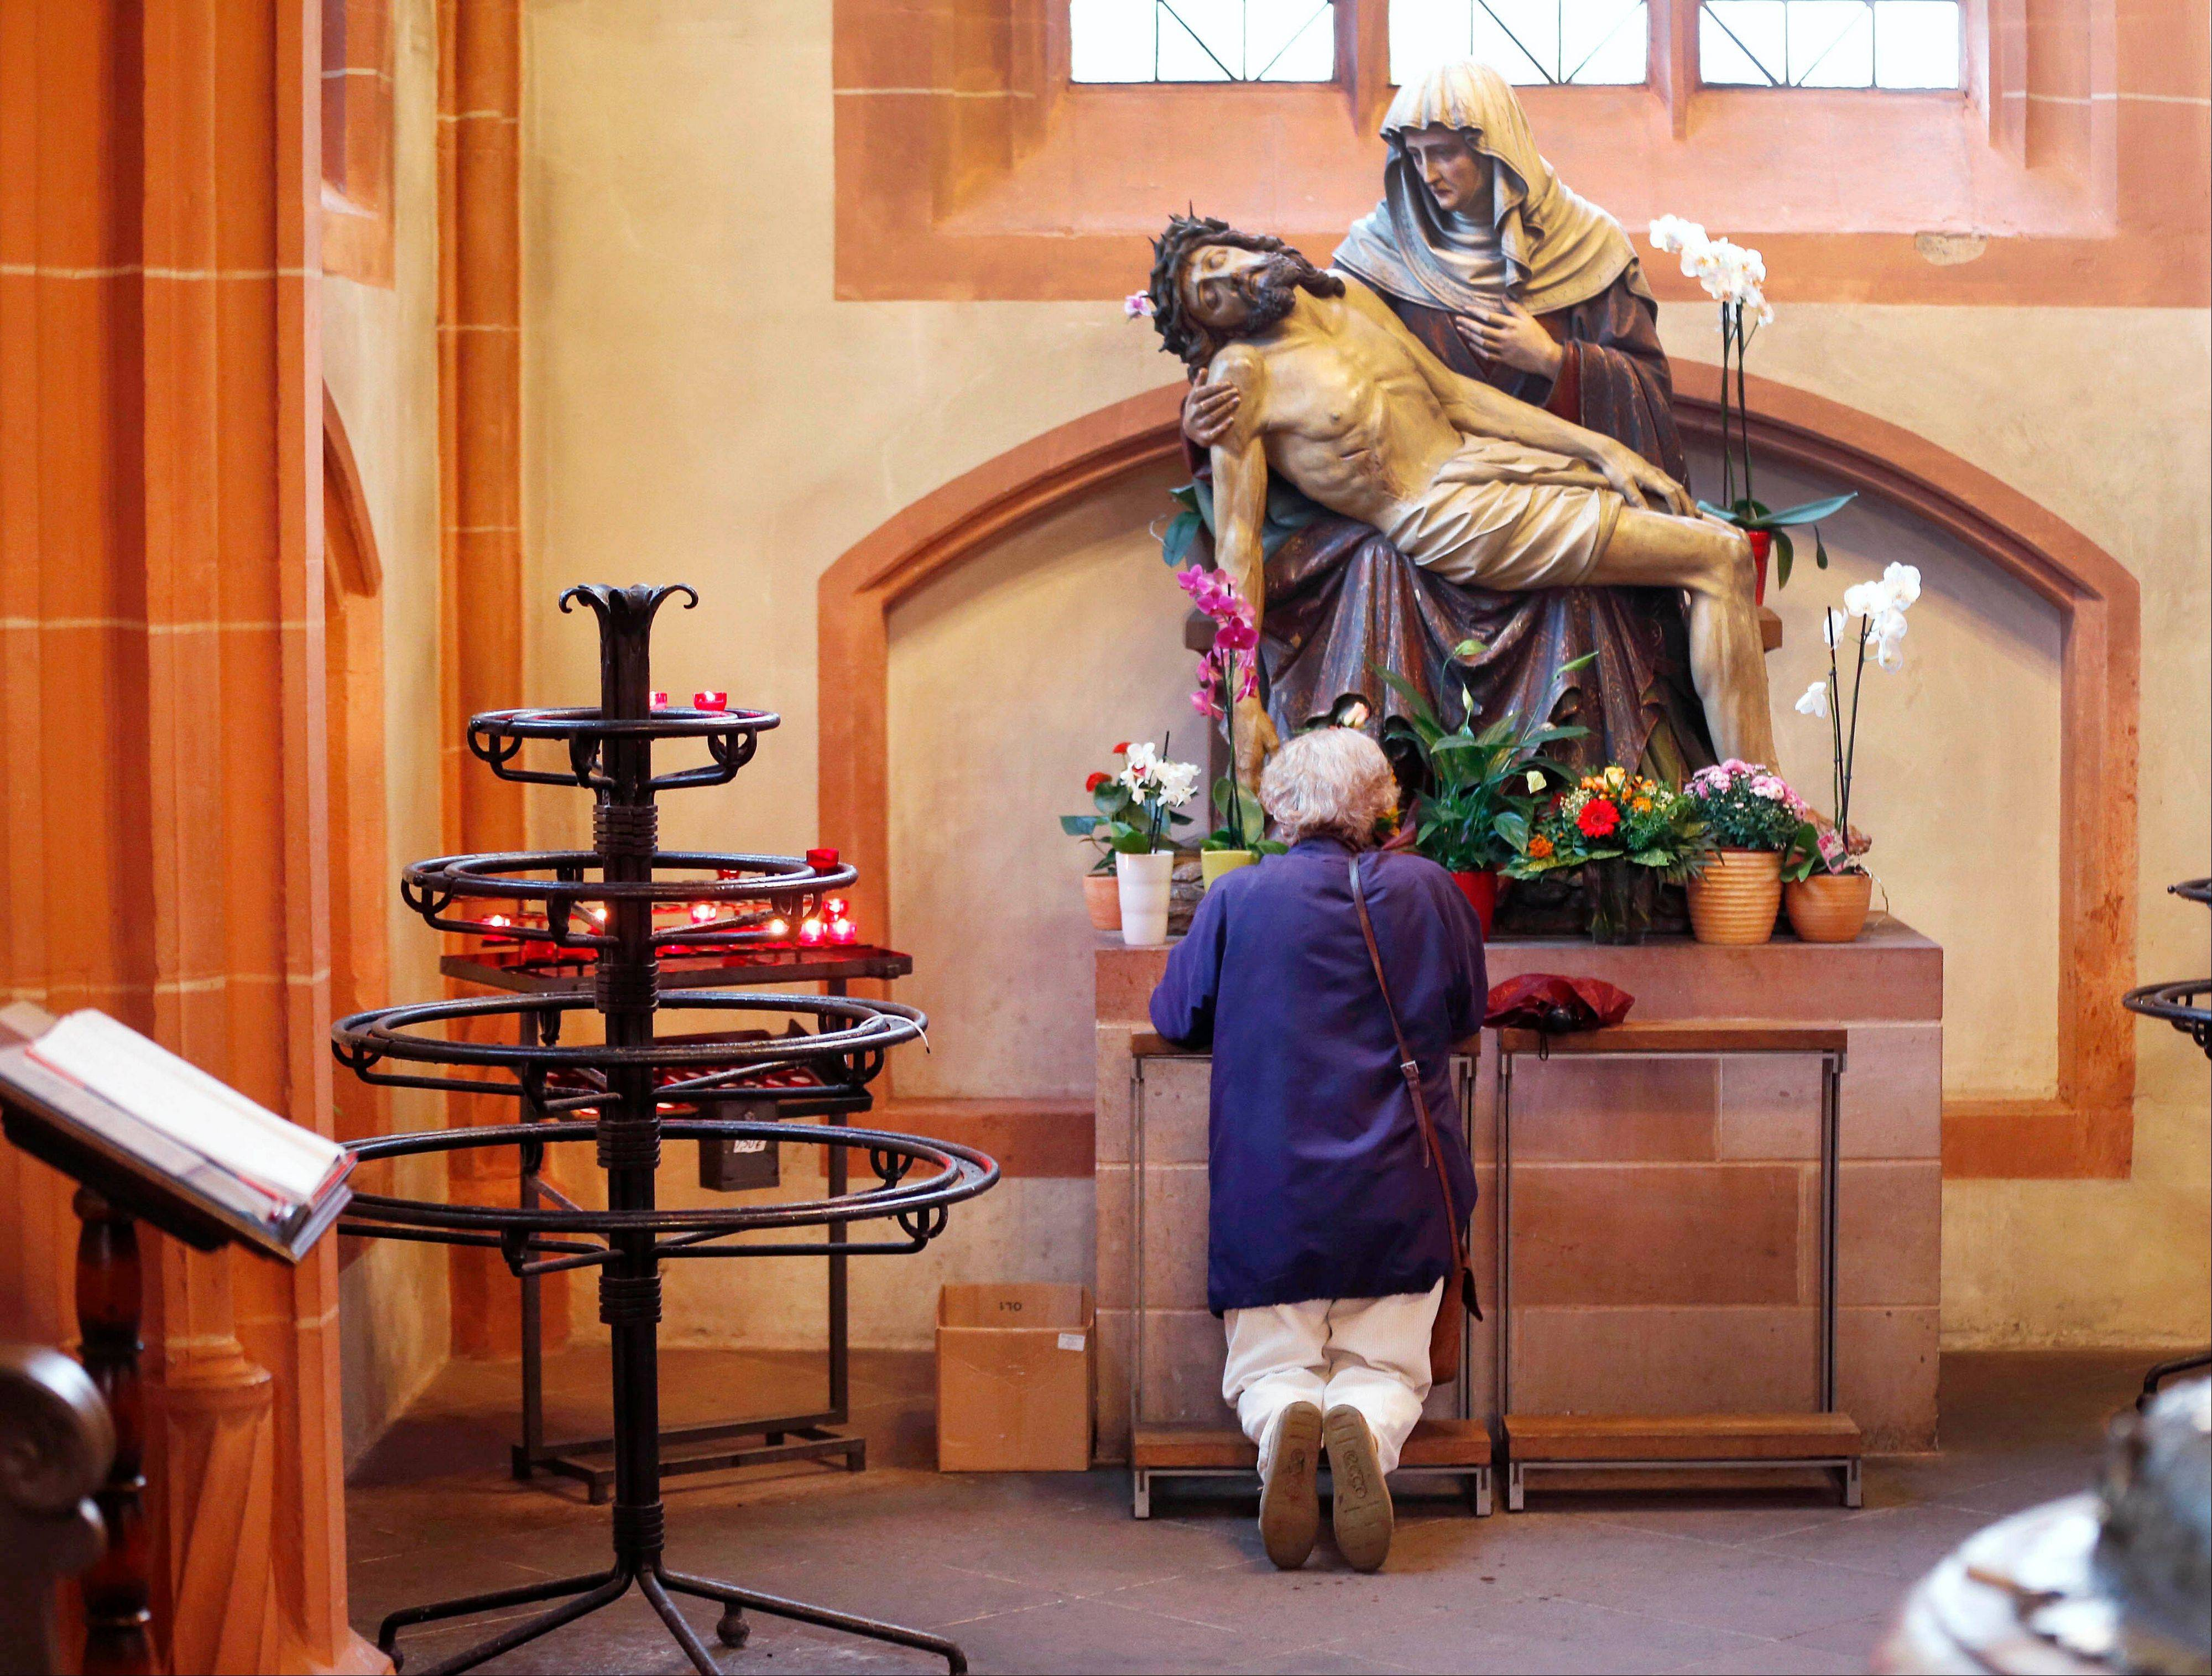 Associated PressA woman prays Thursday under a statue depicting Jesus and Mary, in the cathedral of Frankfurt, Germany.